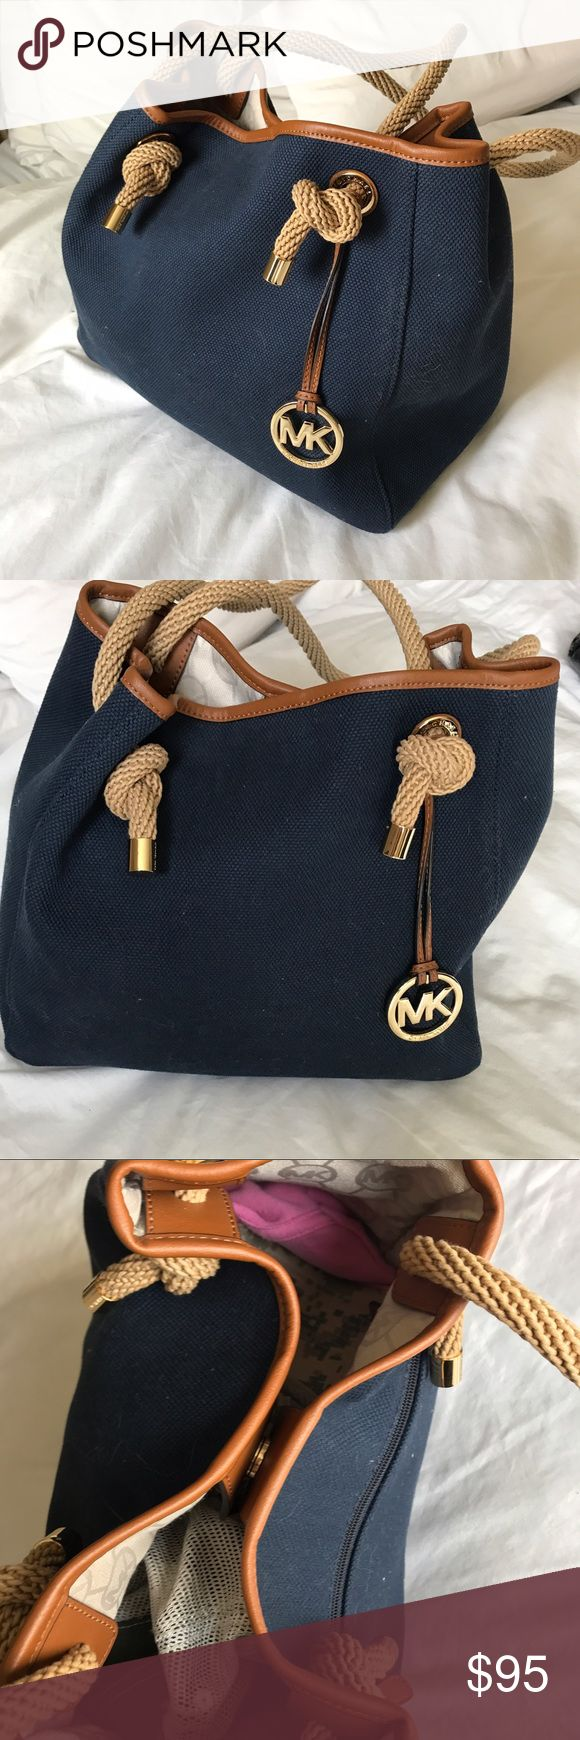 Michael Kors Nautical Purse Nautical design. Used only twice so perfect condition. I loved this bag for the Summer! Cloth fabric with knotted straps. Michael Kors Bags Shoulder Bags